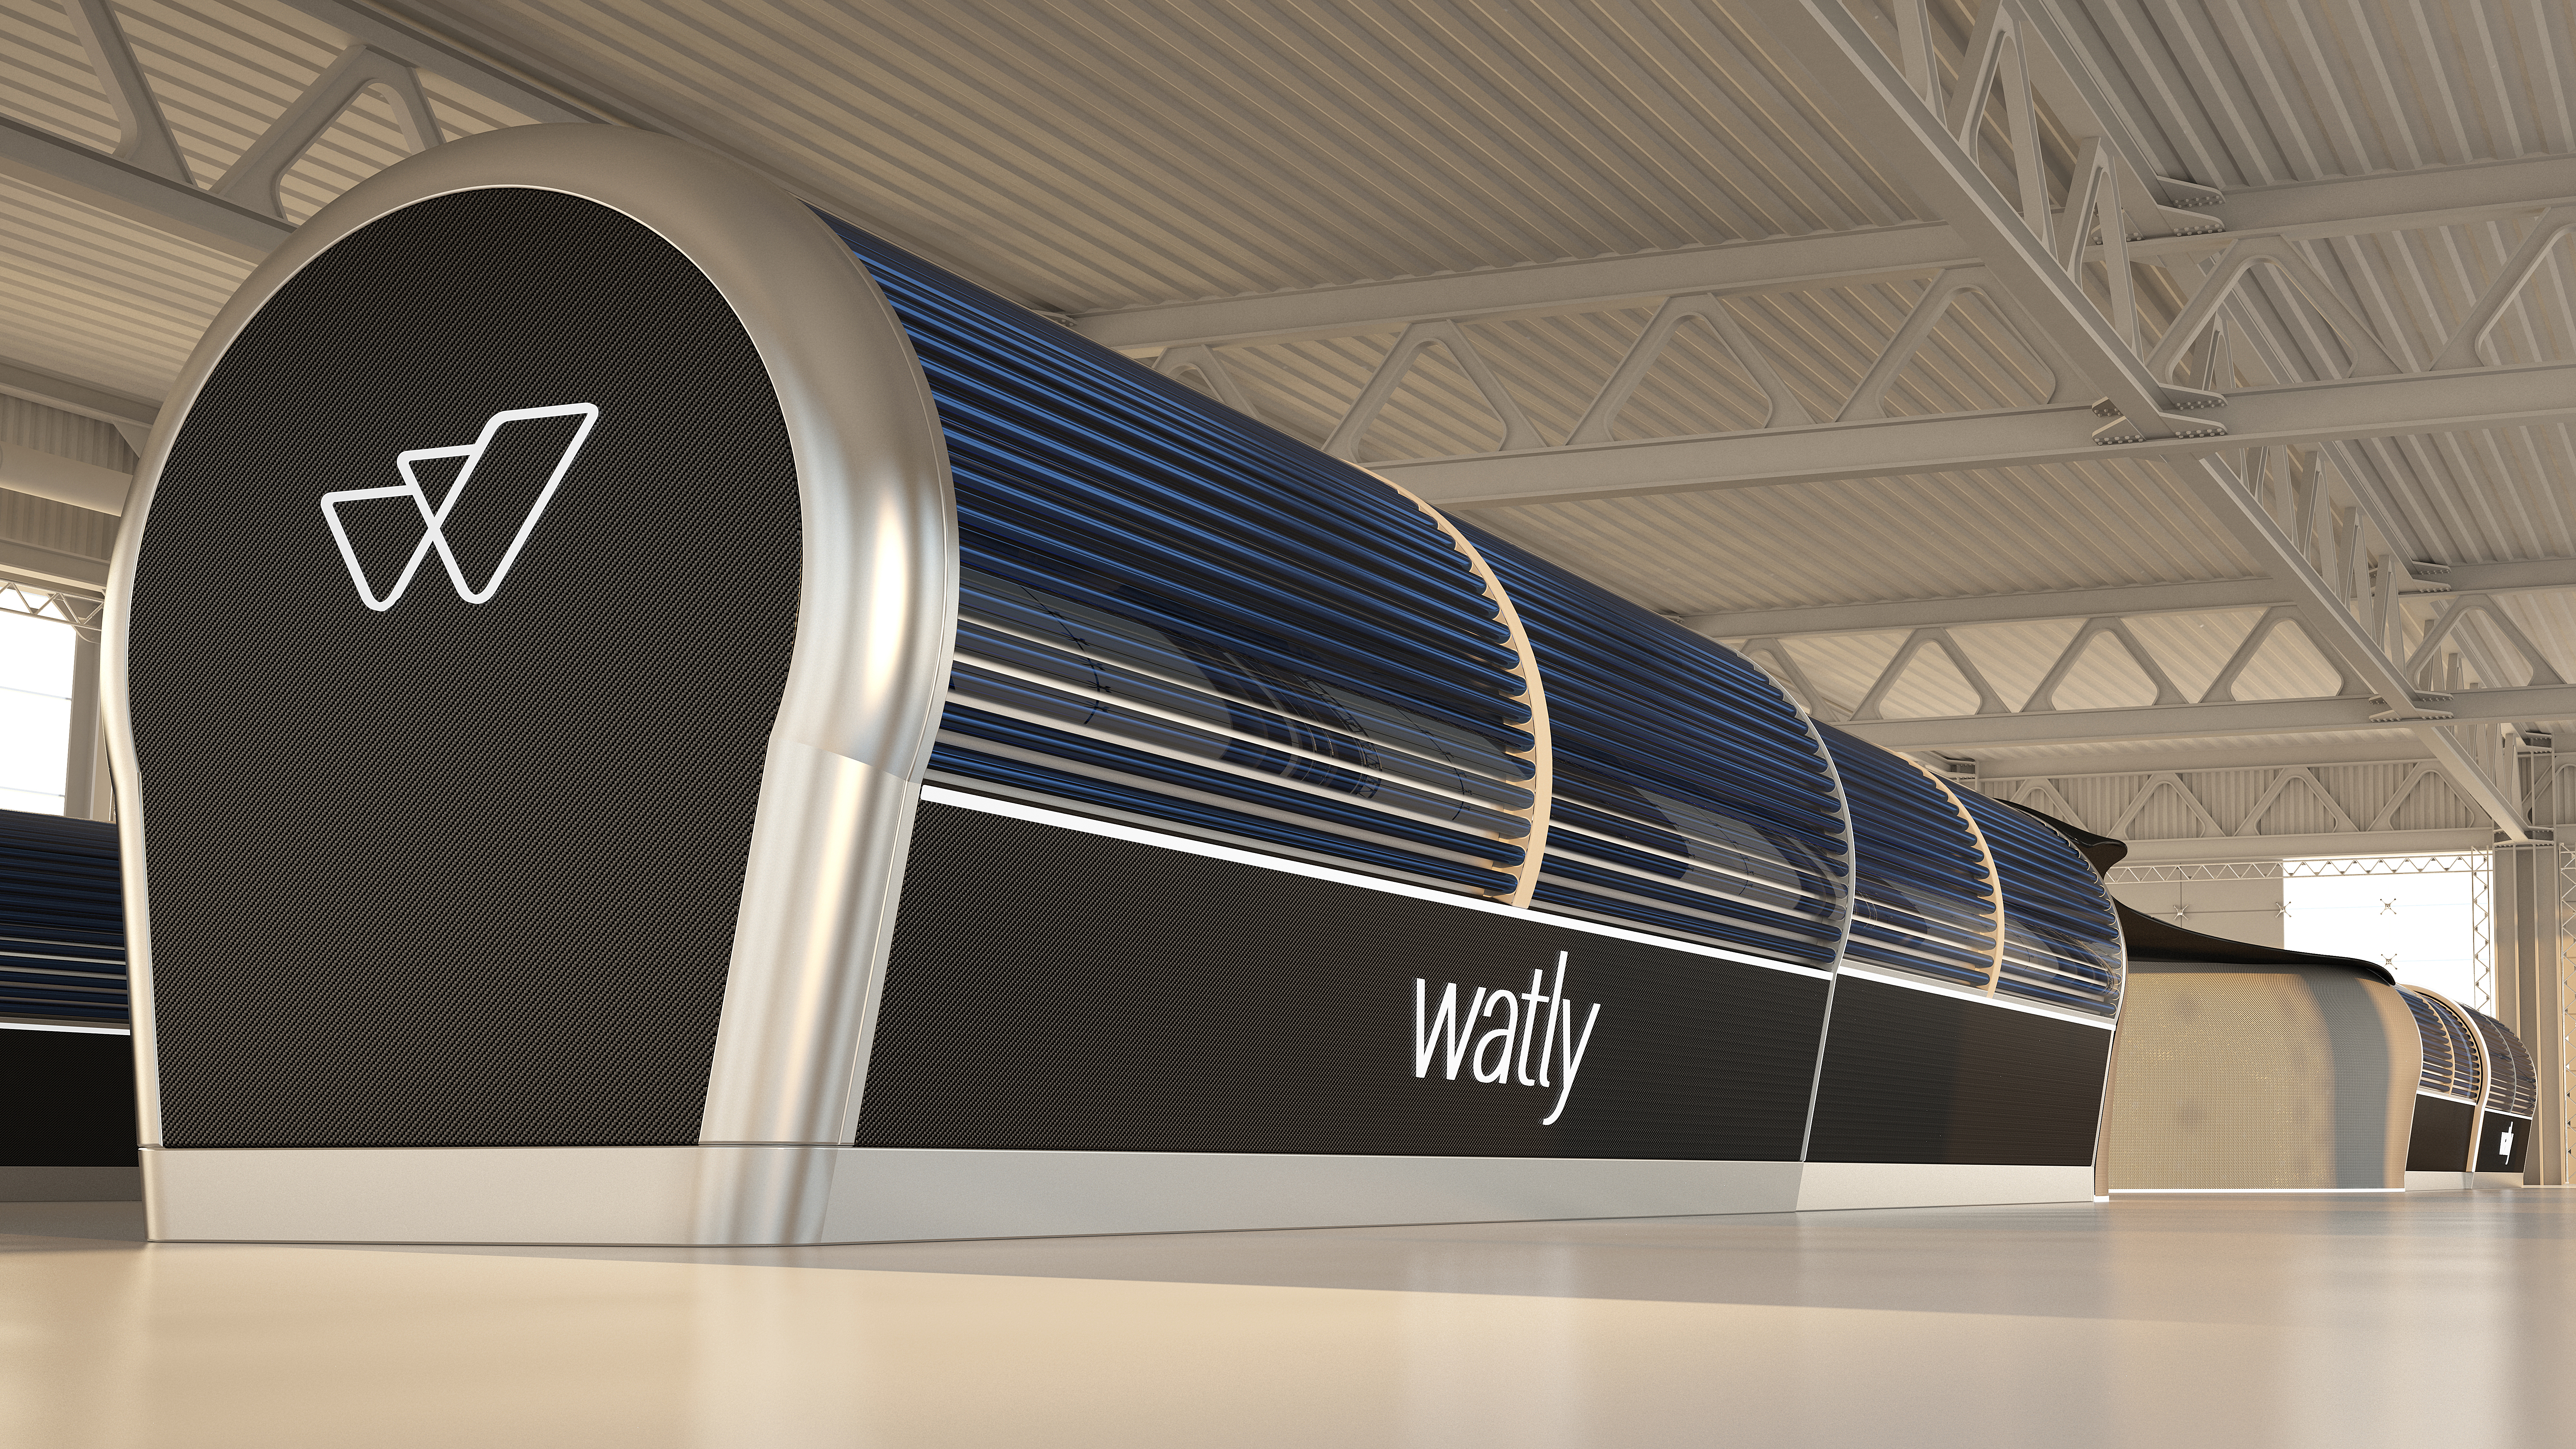 The Watly 3.0 prototype, It's creators describe Watly as a thermal dynamic computer that relies on solar power to purify water, produce electricity and provide internet connectivity for up to 3,000 people at a time.